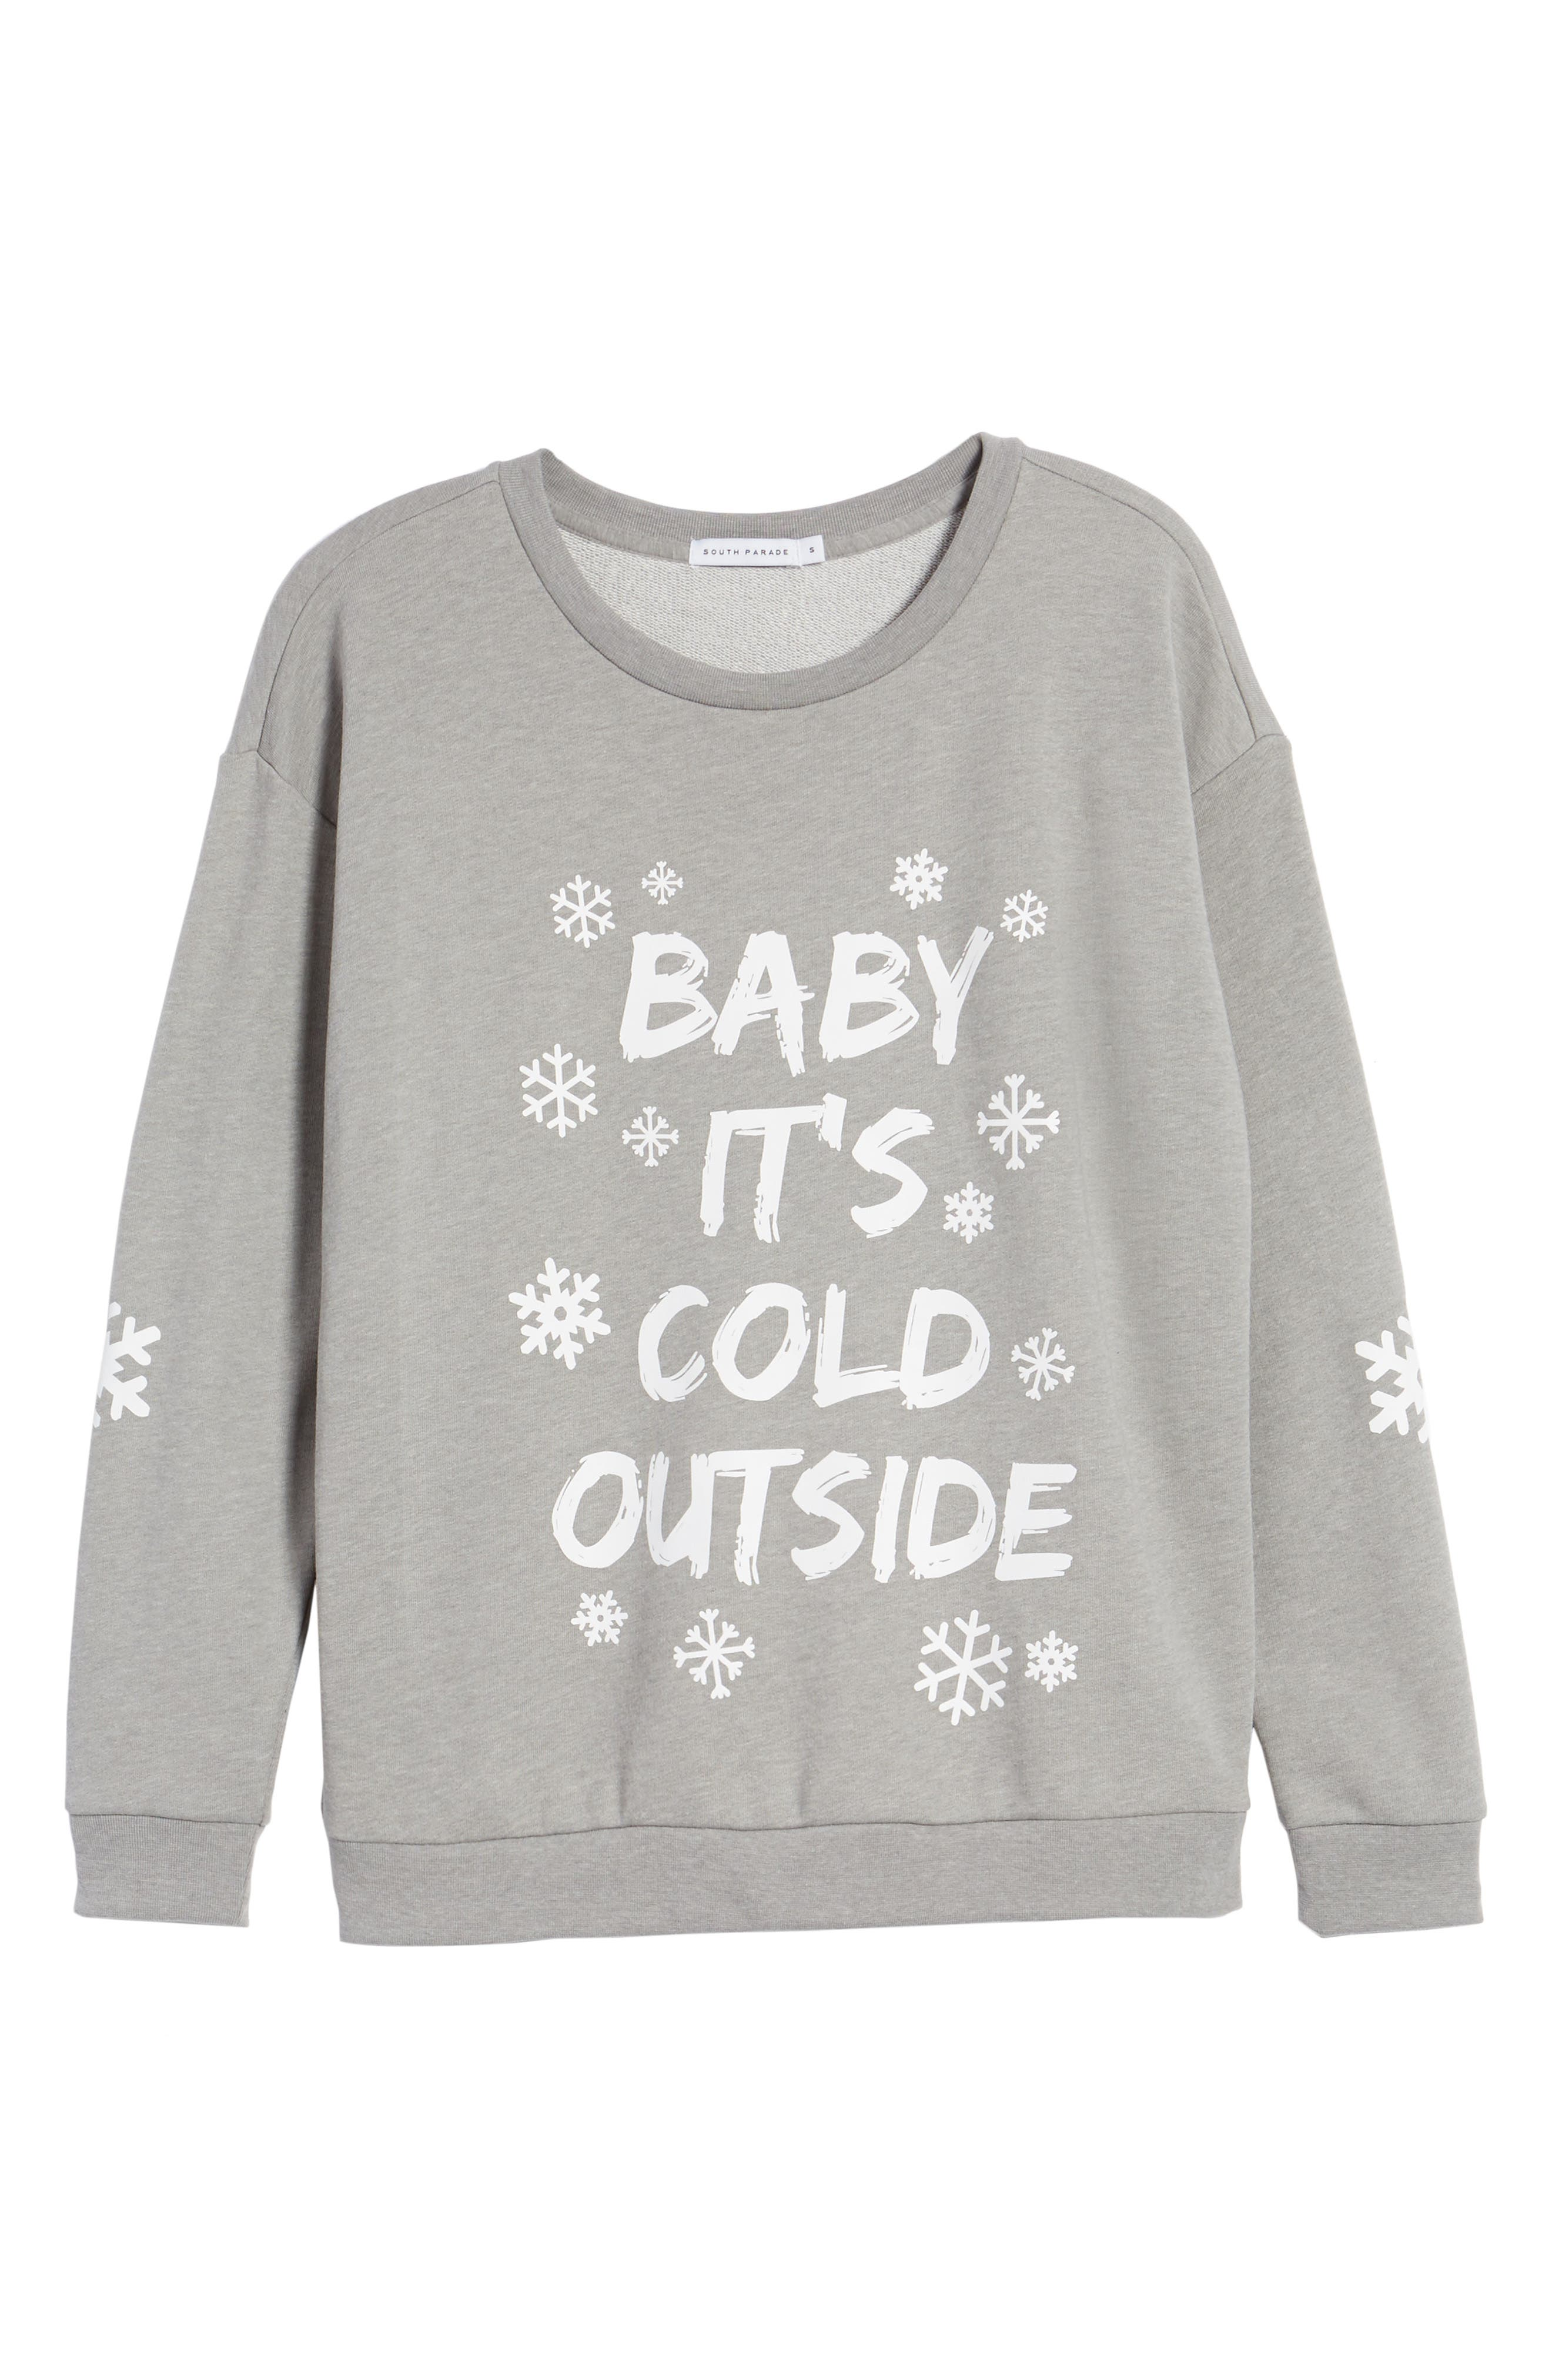 Baby It's Cold Outside Sweatshirt,                             Alternate thumbnail 6, color,                             020